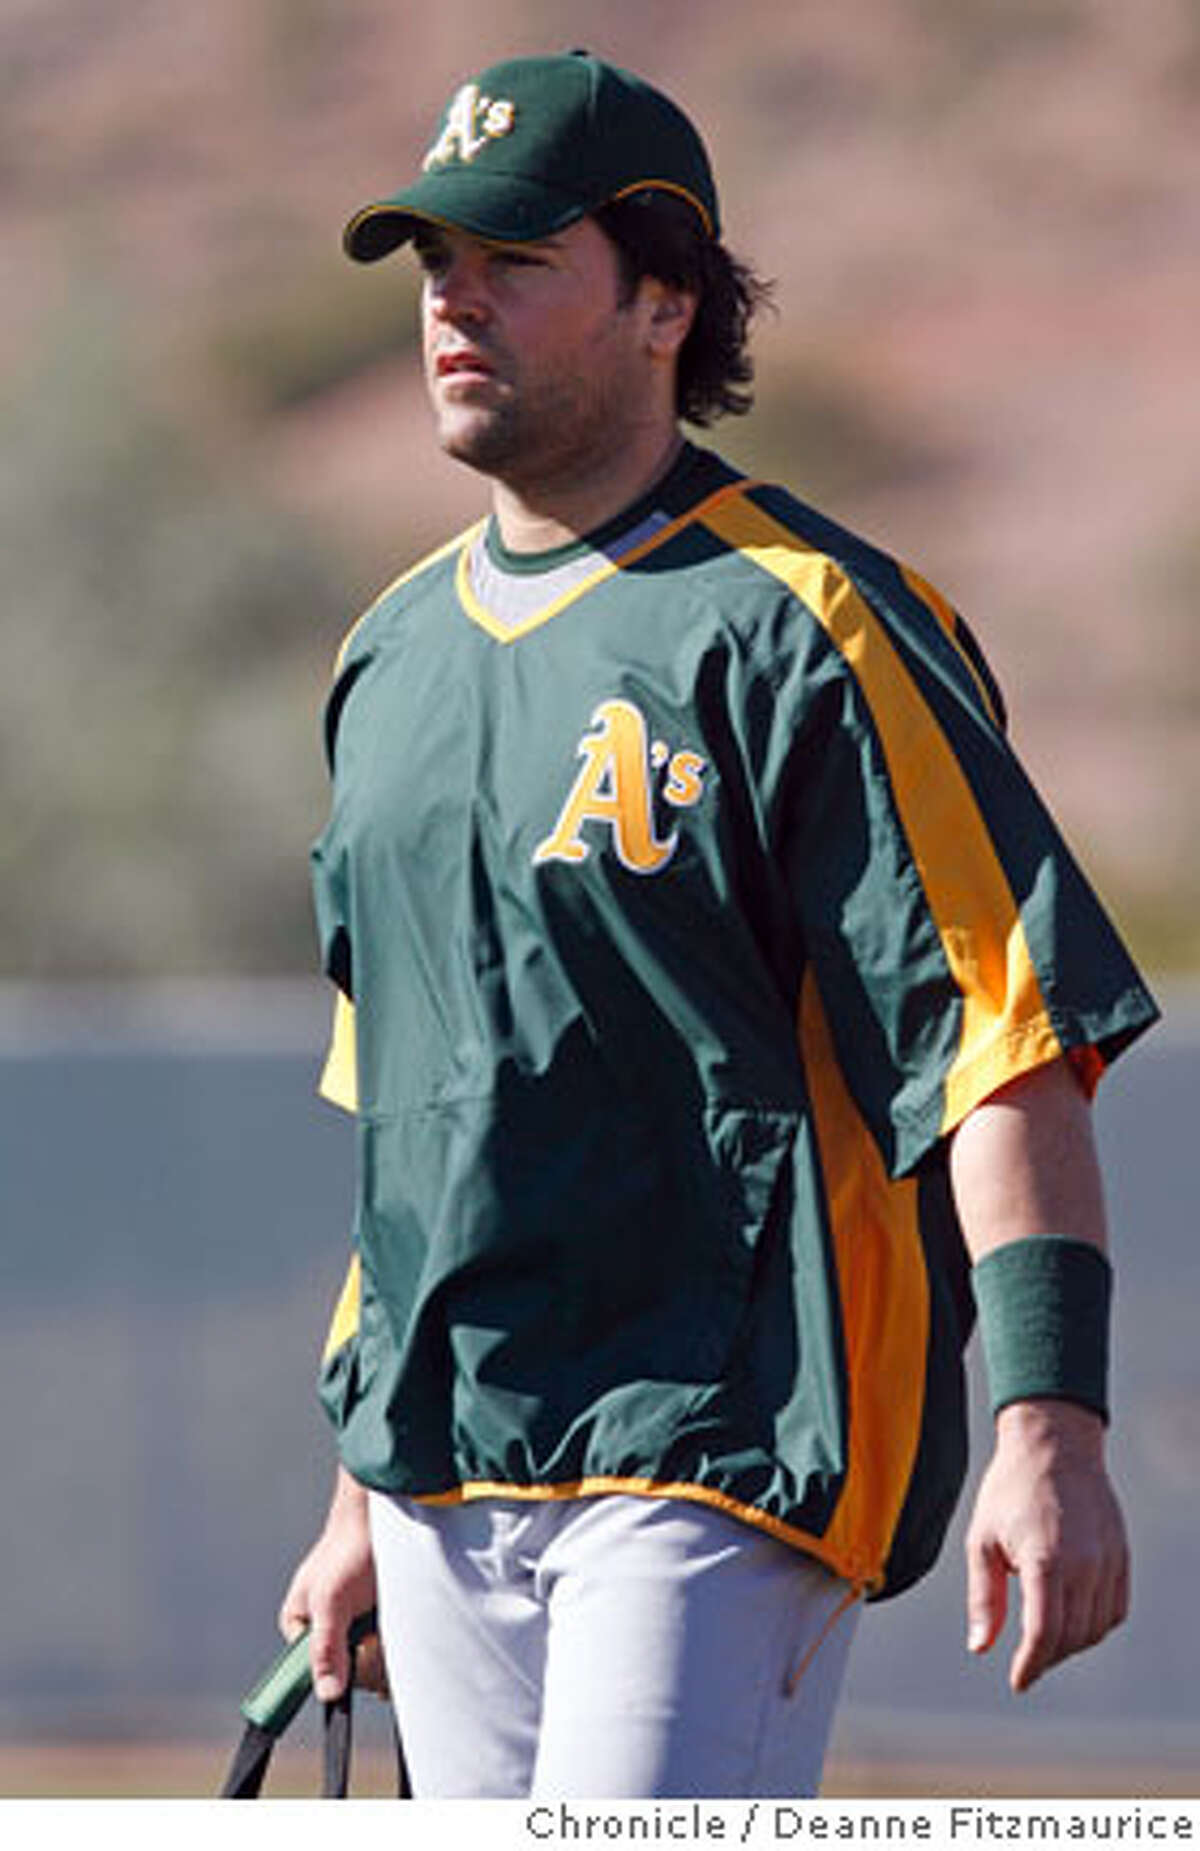 Mike Piazza arrives at spring training for the Oakland A's. The Oakland Athletics have a spring training workout at Papago Park. Photographed in Phoenix on 2/22/07. Chronicle Photo / Deanne Fitzmaurice